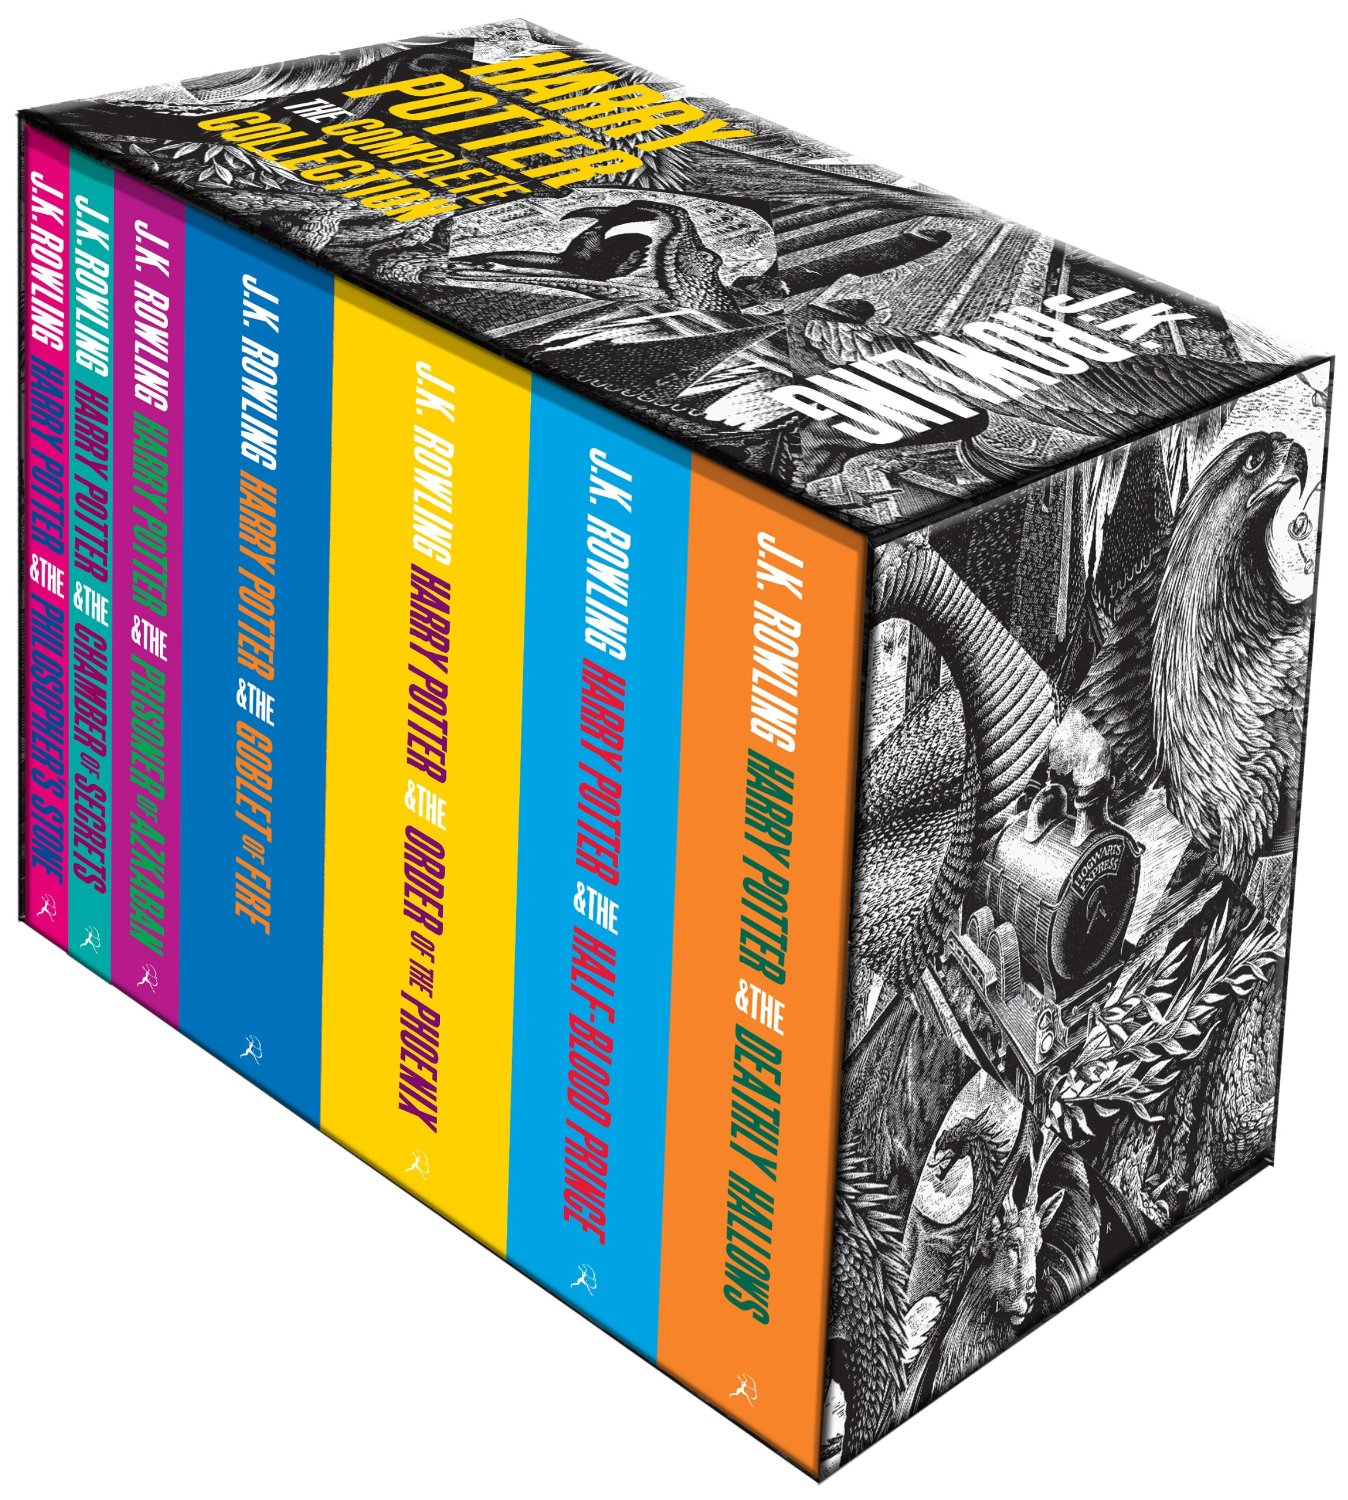 Harry Potter Book Collection Hardback ~ Harry potter the complete collection books set box